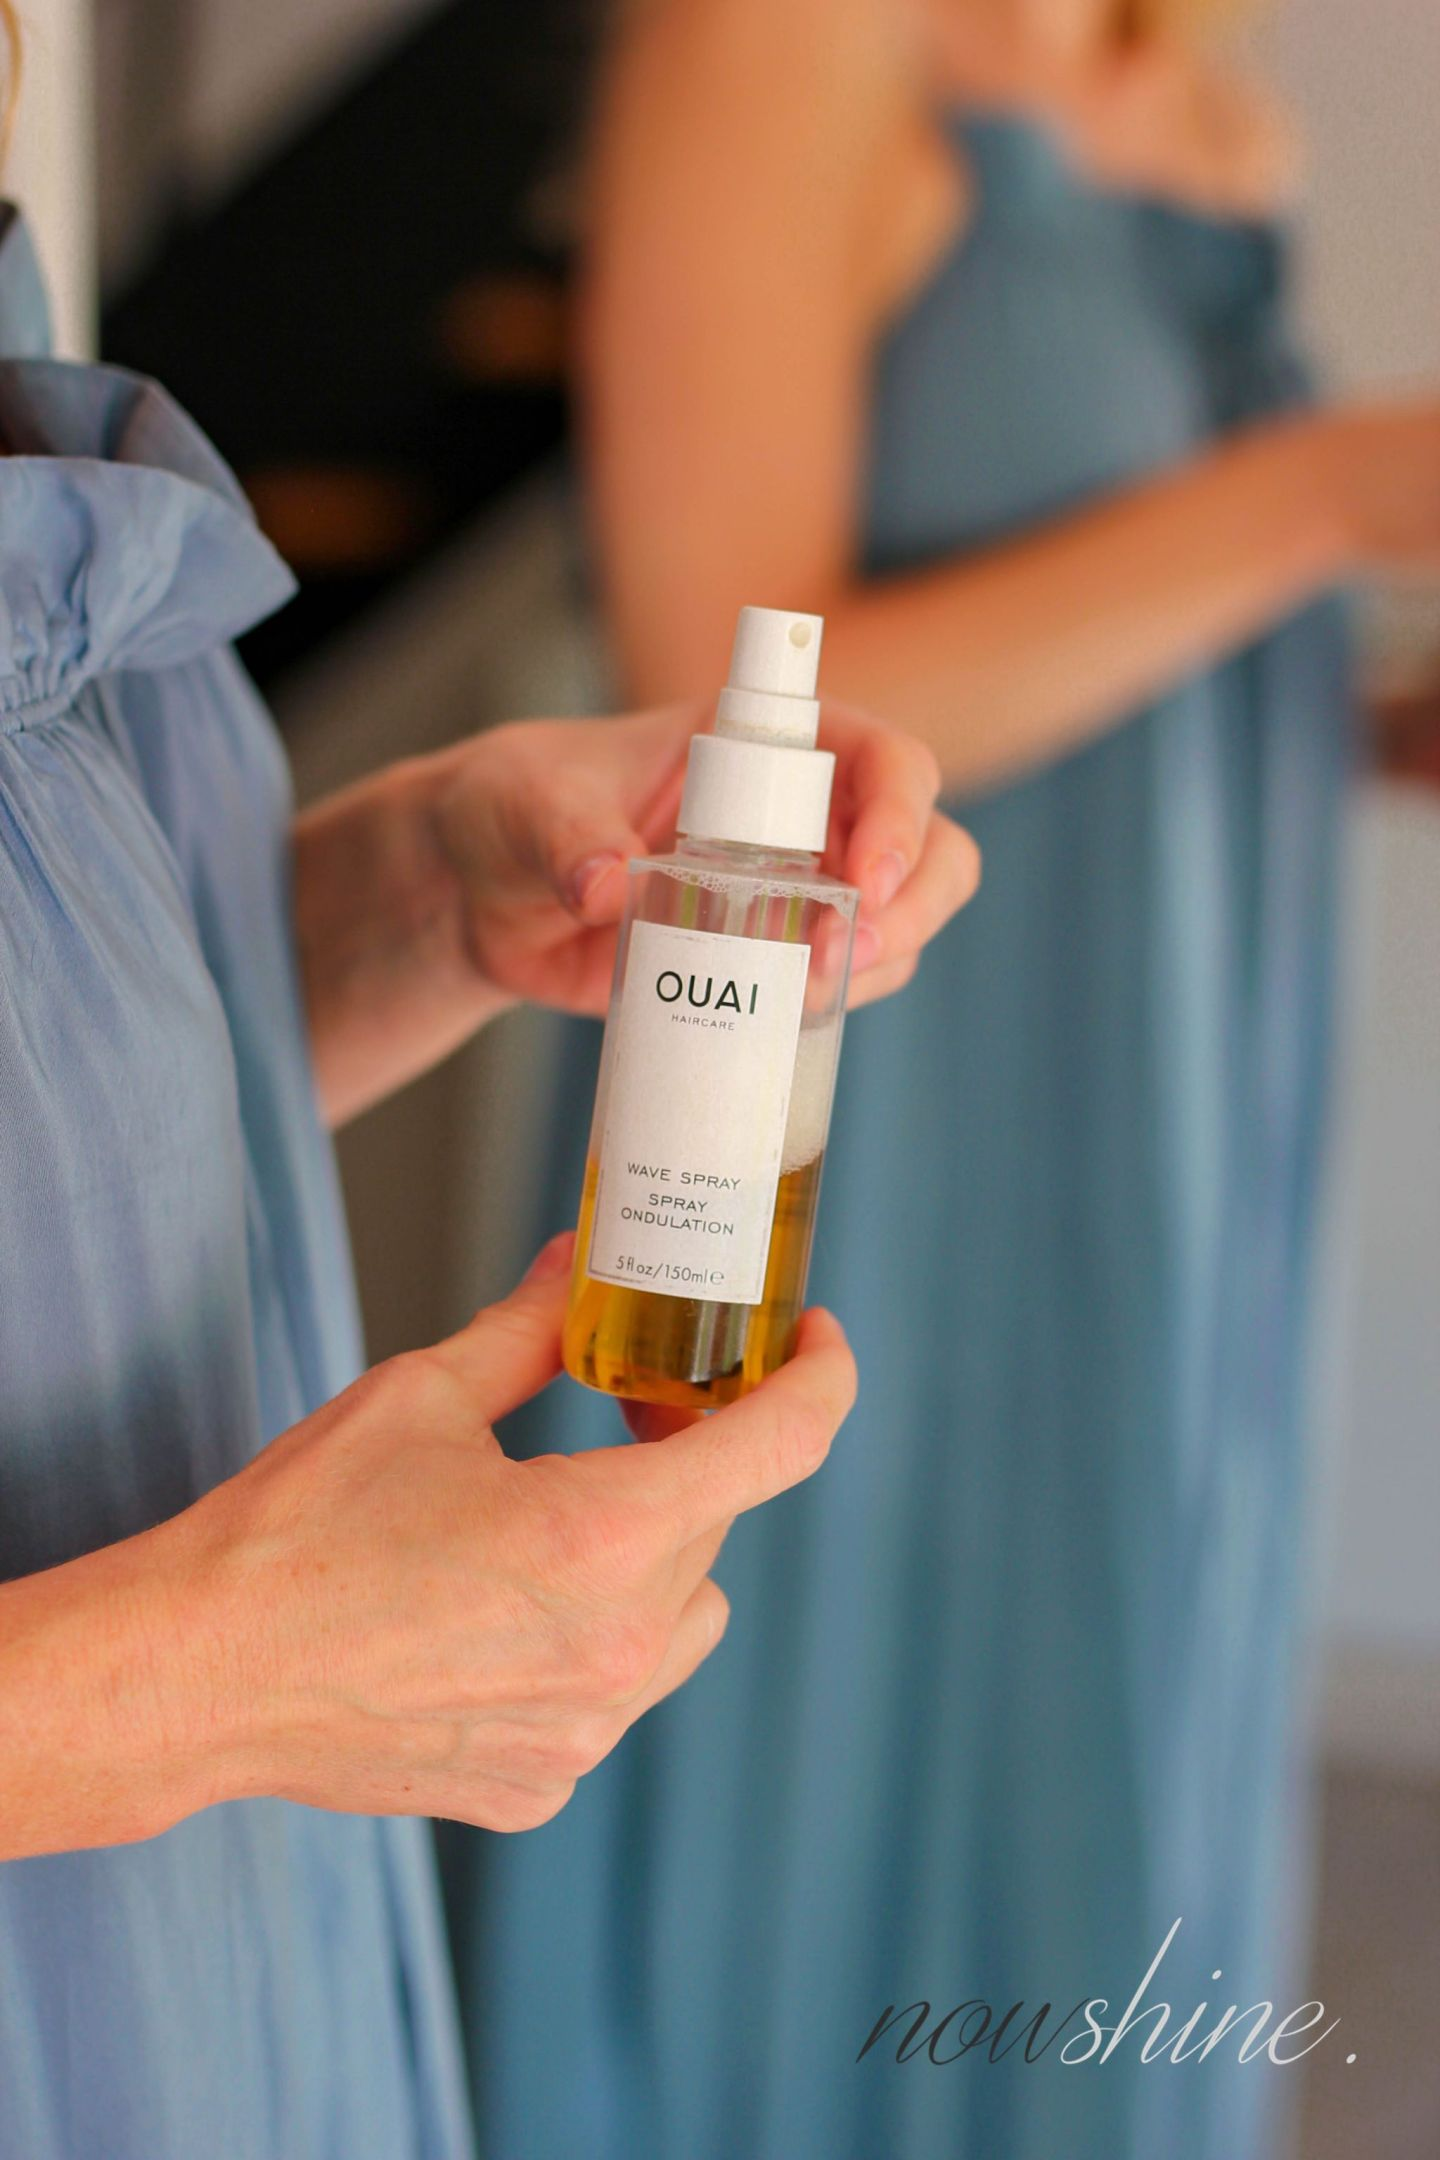 Wellen und Locken ohne Hitze - easy Beach Waves für den Sommer - The Ouai Wave Spray